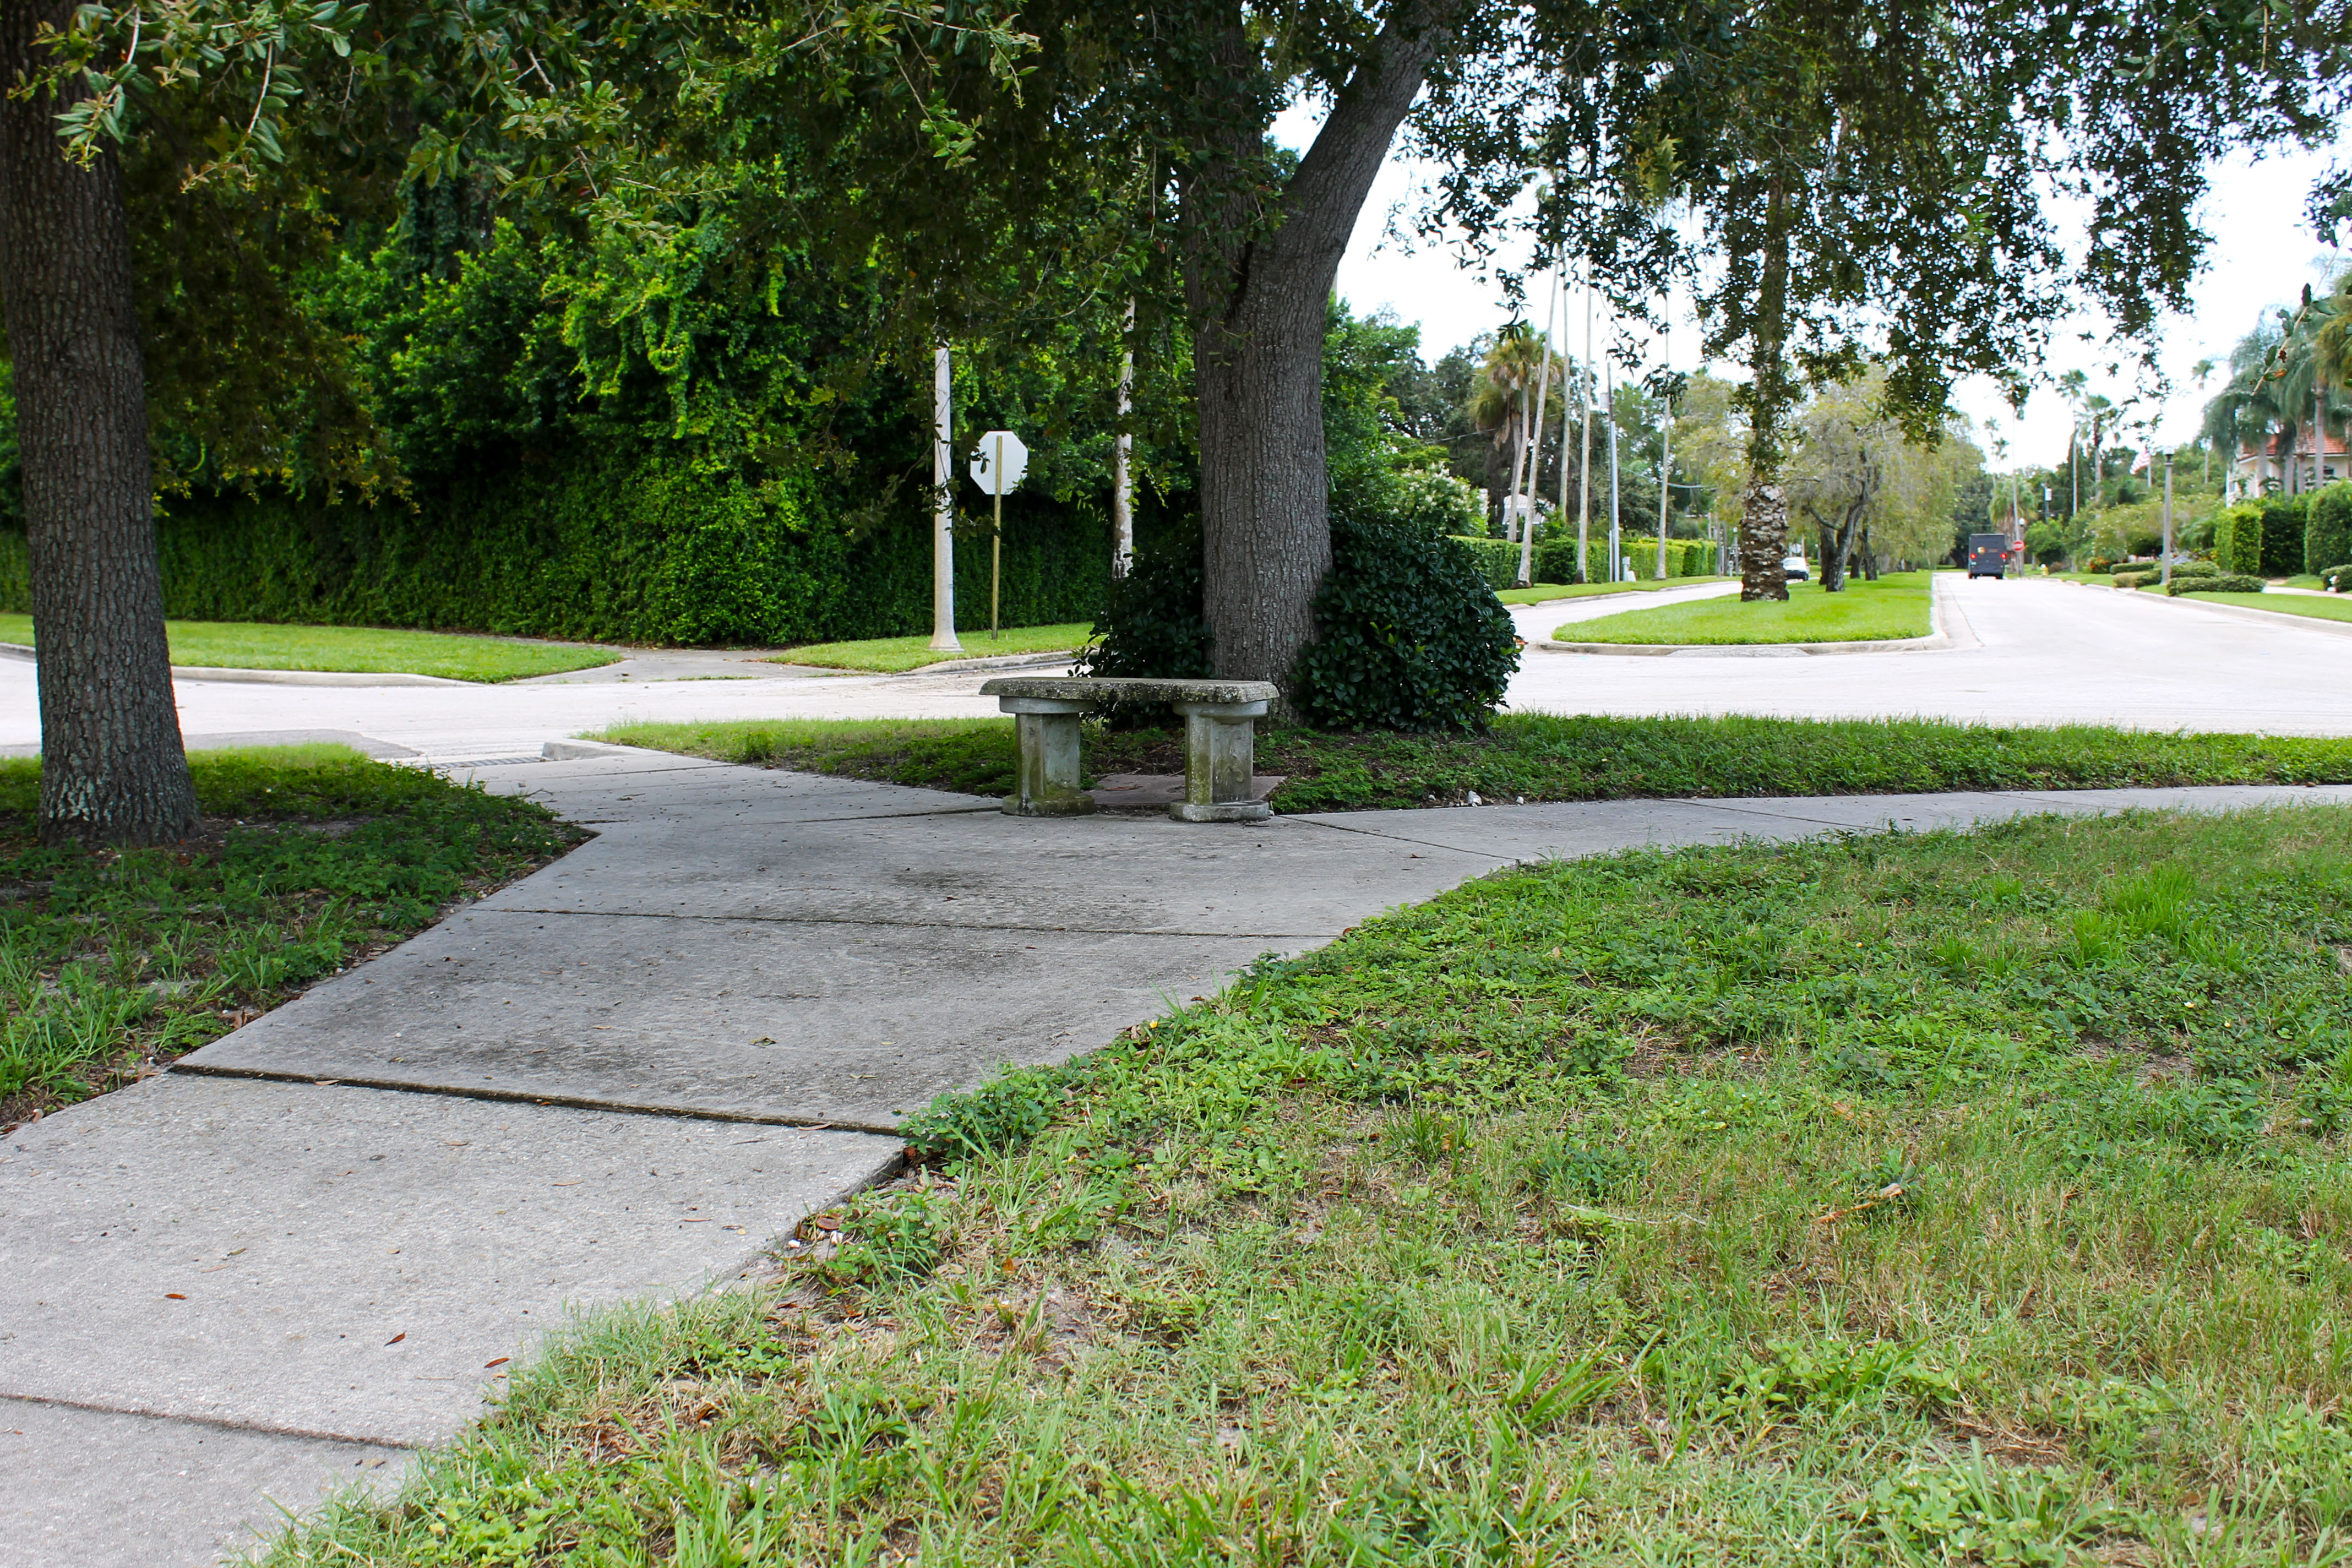 A sidewalk path through Palmview Park that leads to a concrete bench in its center